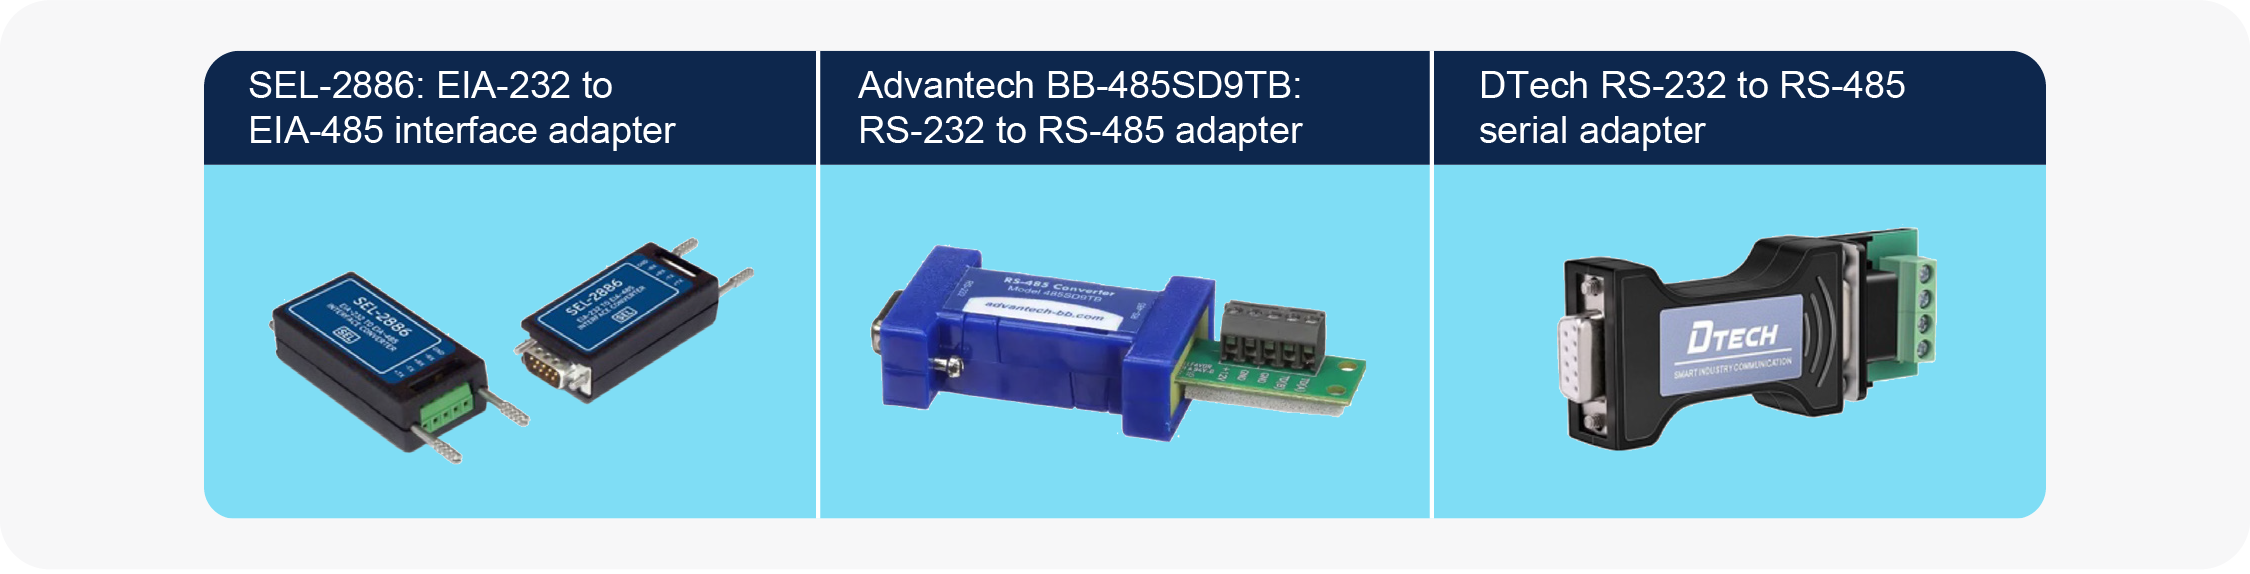 RS-232 to RS-485 adapters